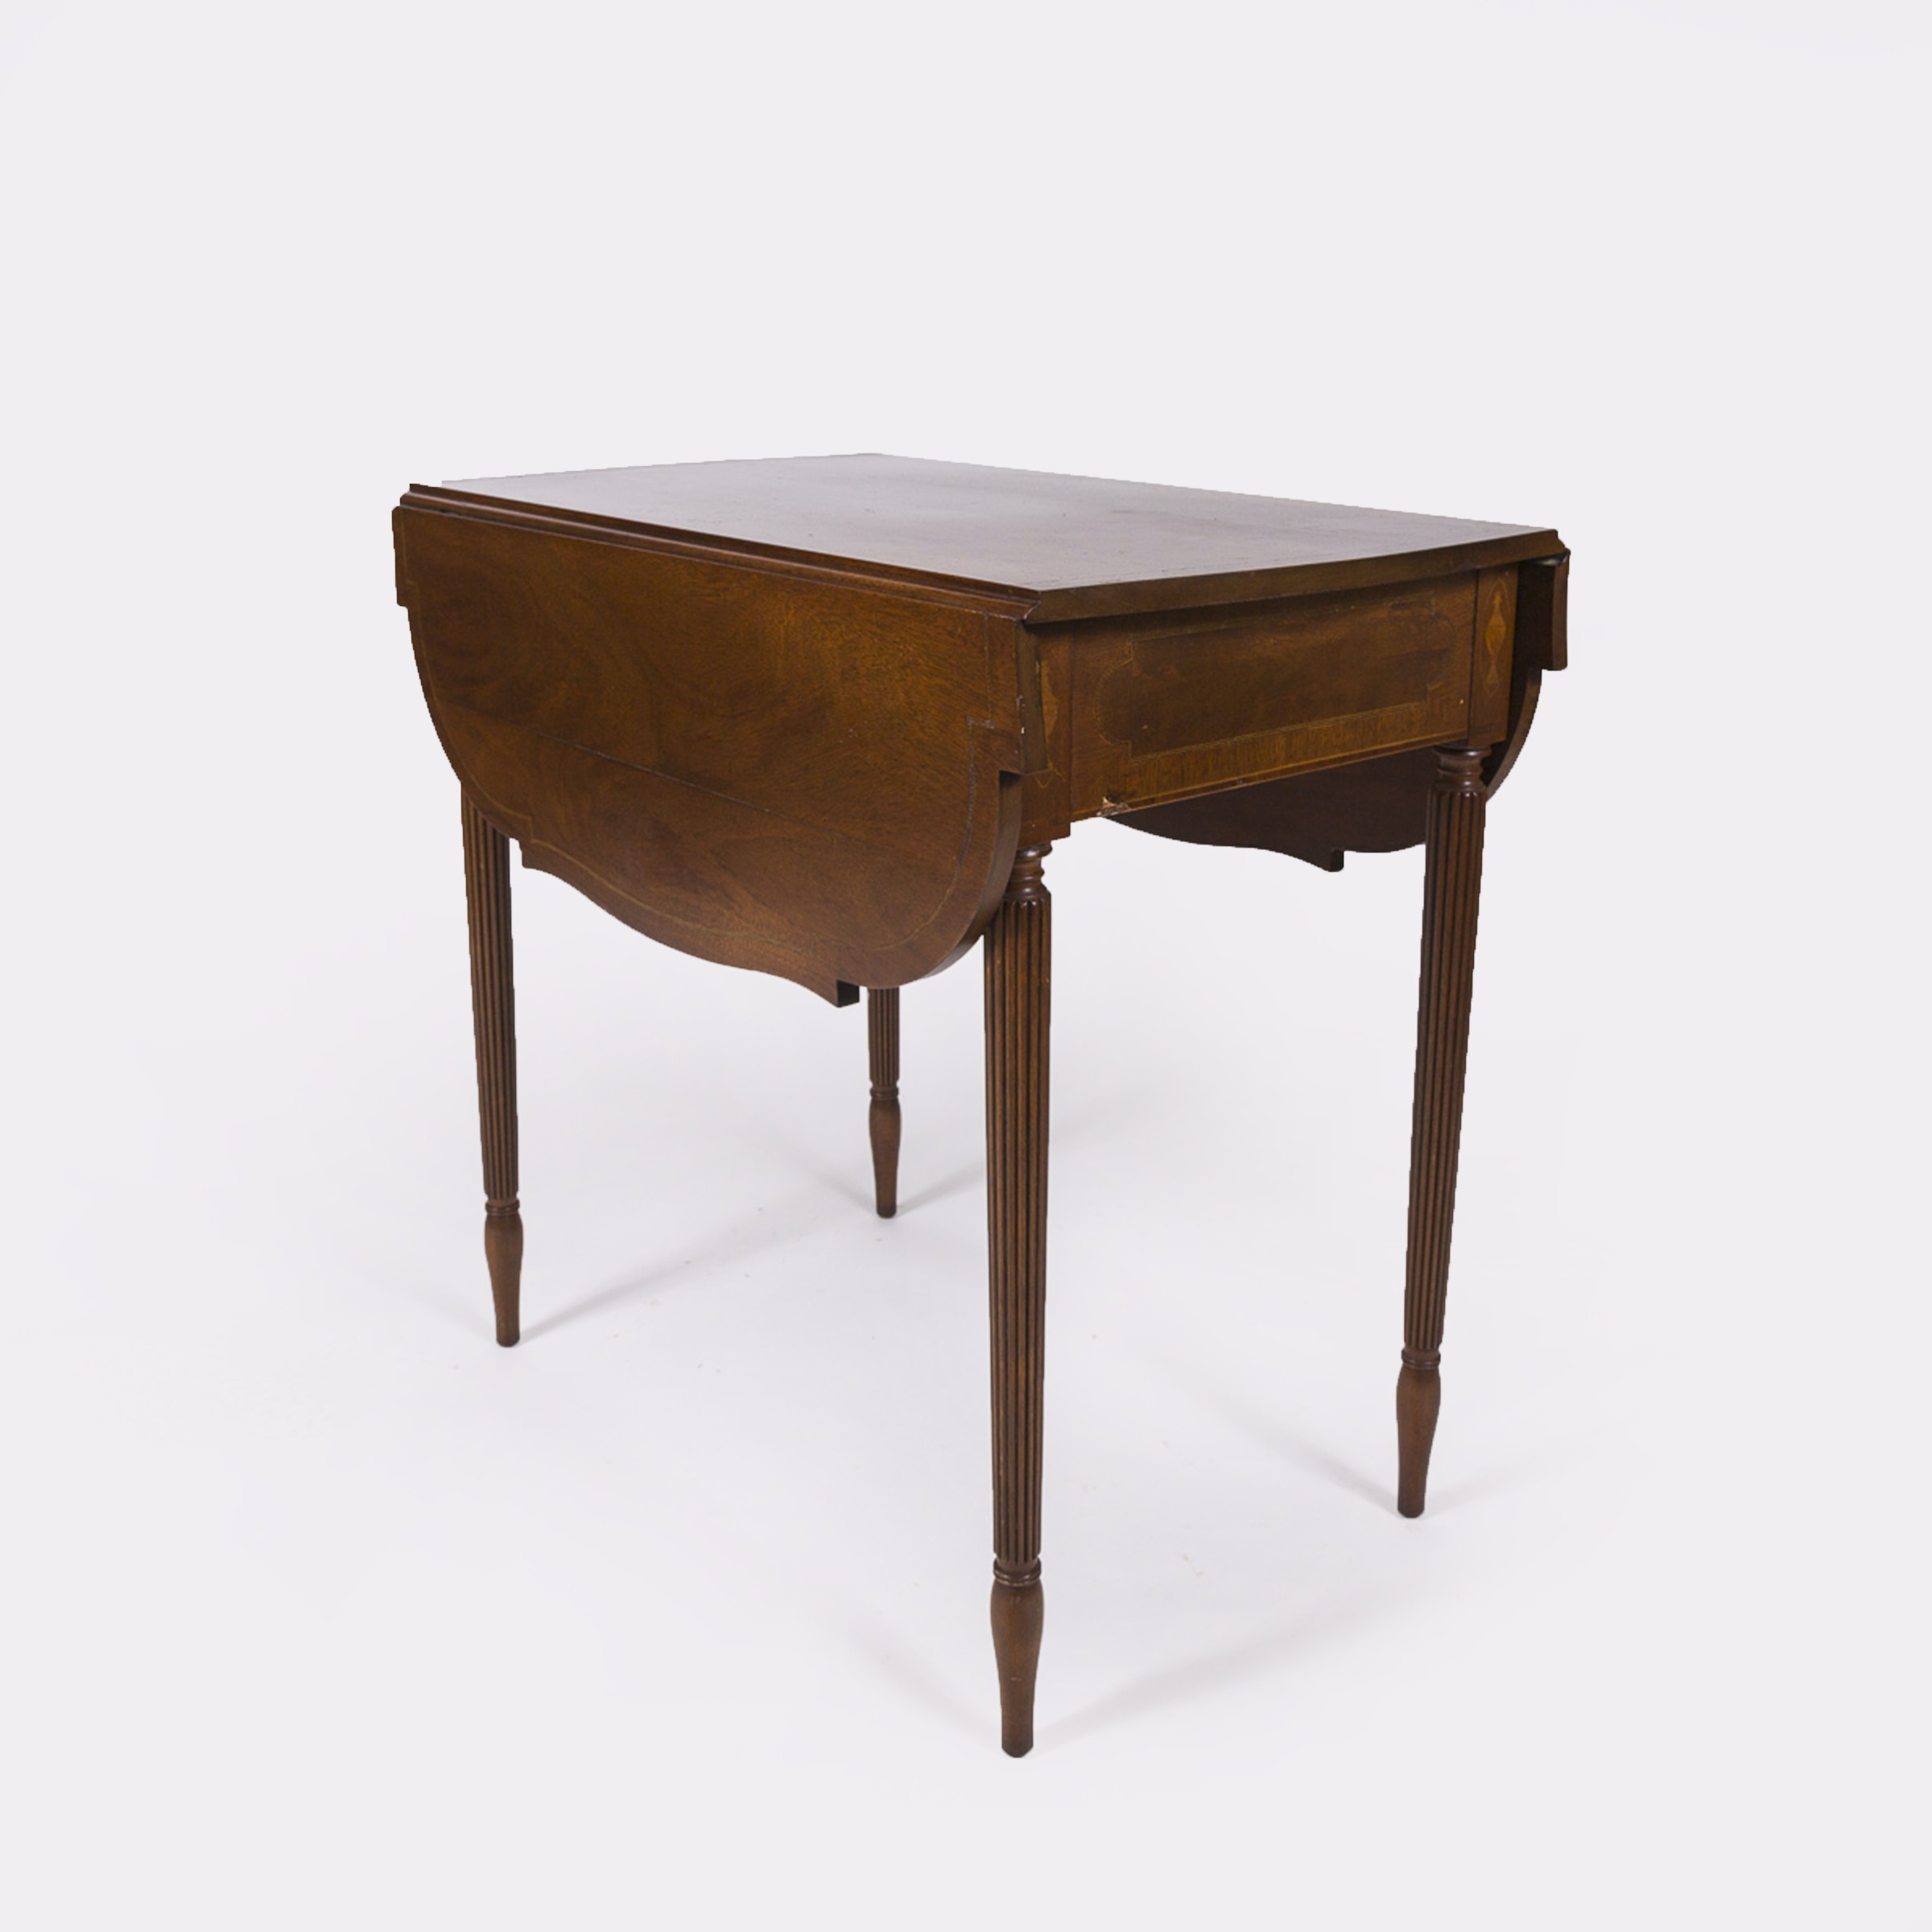 Hepplewhite Style Walnut Occasional Table with Marquetry